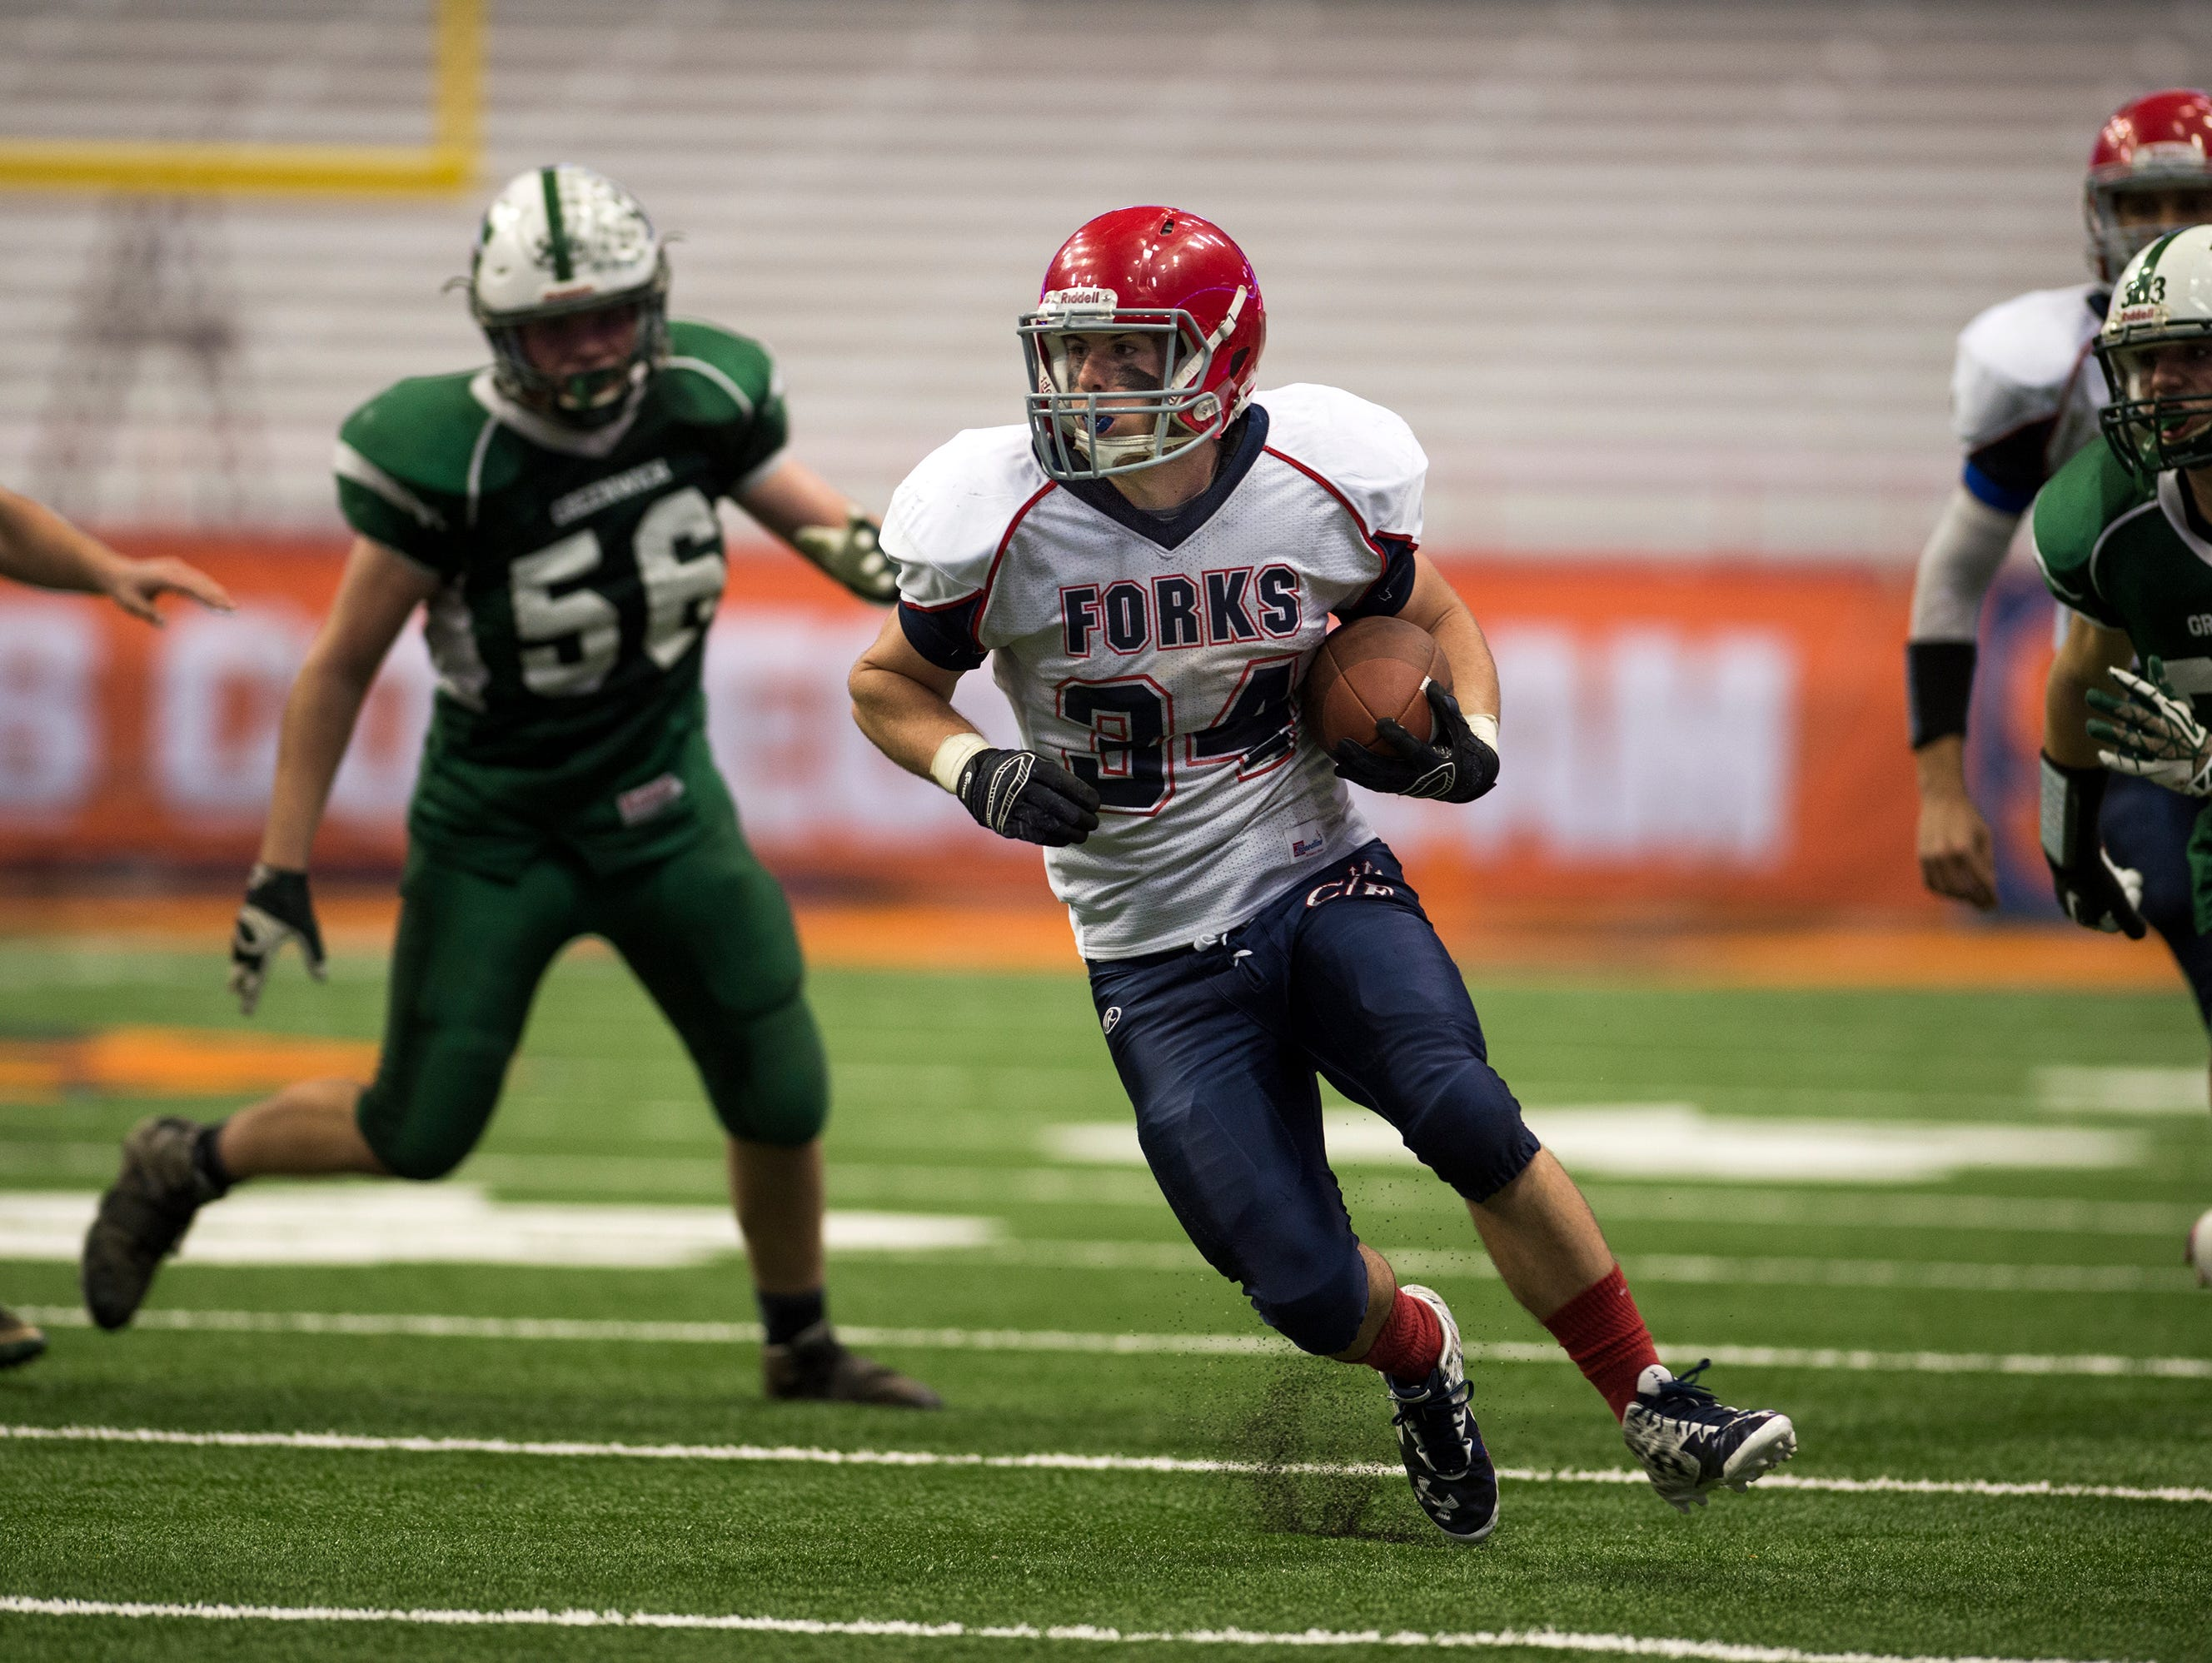 Chenango Forks running back Cody Lamond rushes the ball during the fourth quarter of the Blue Devil's 42-7 win over Greenwich in the Class C state championship in Syracuse on Friday, Nov. 27, 2015.